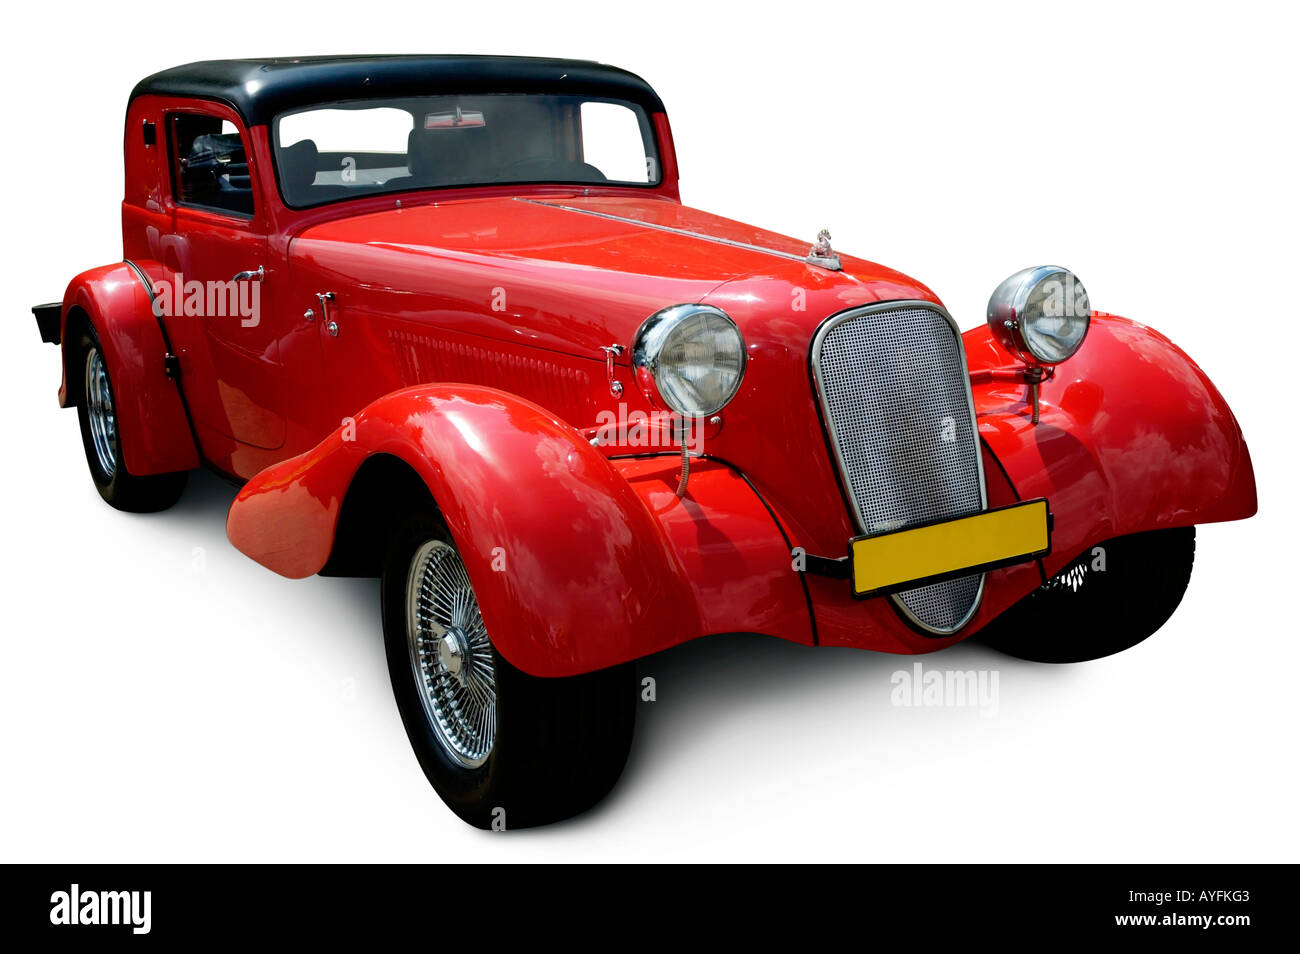 Classic Red DKW retro vintage car - Stock Image